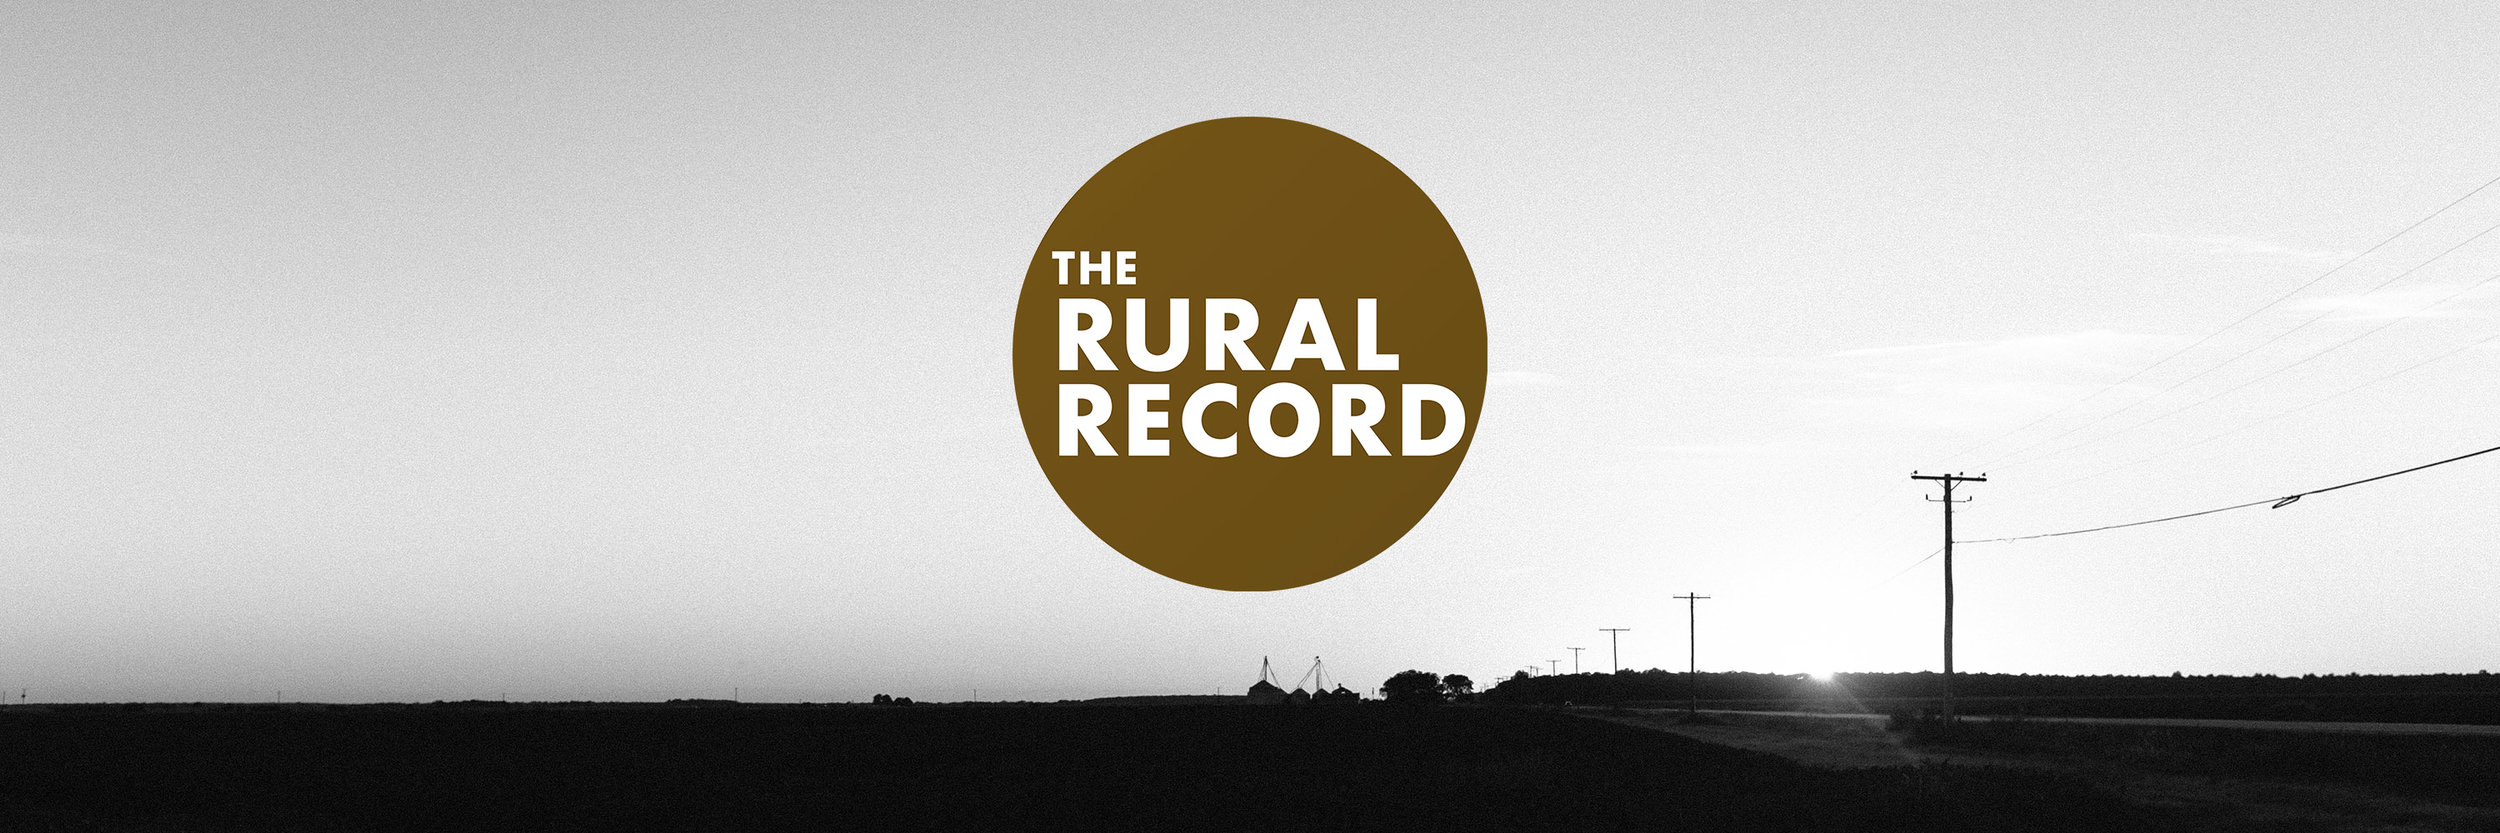 RuralRecord_banner.jpg